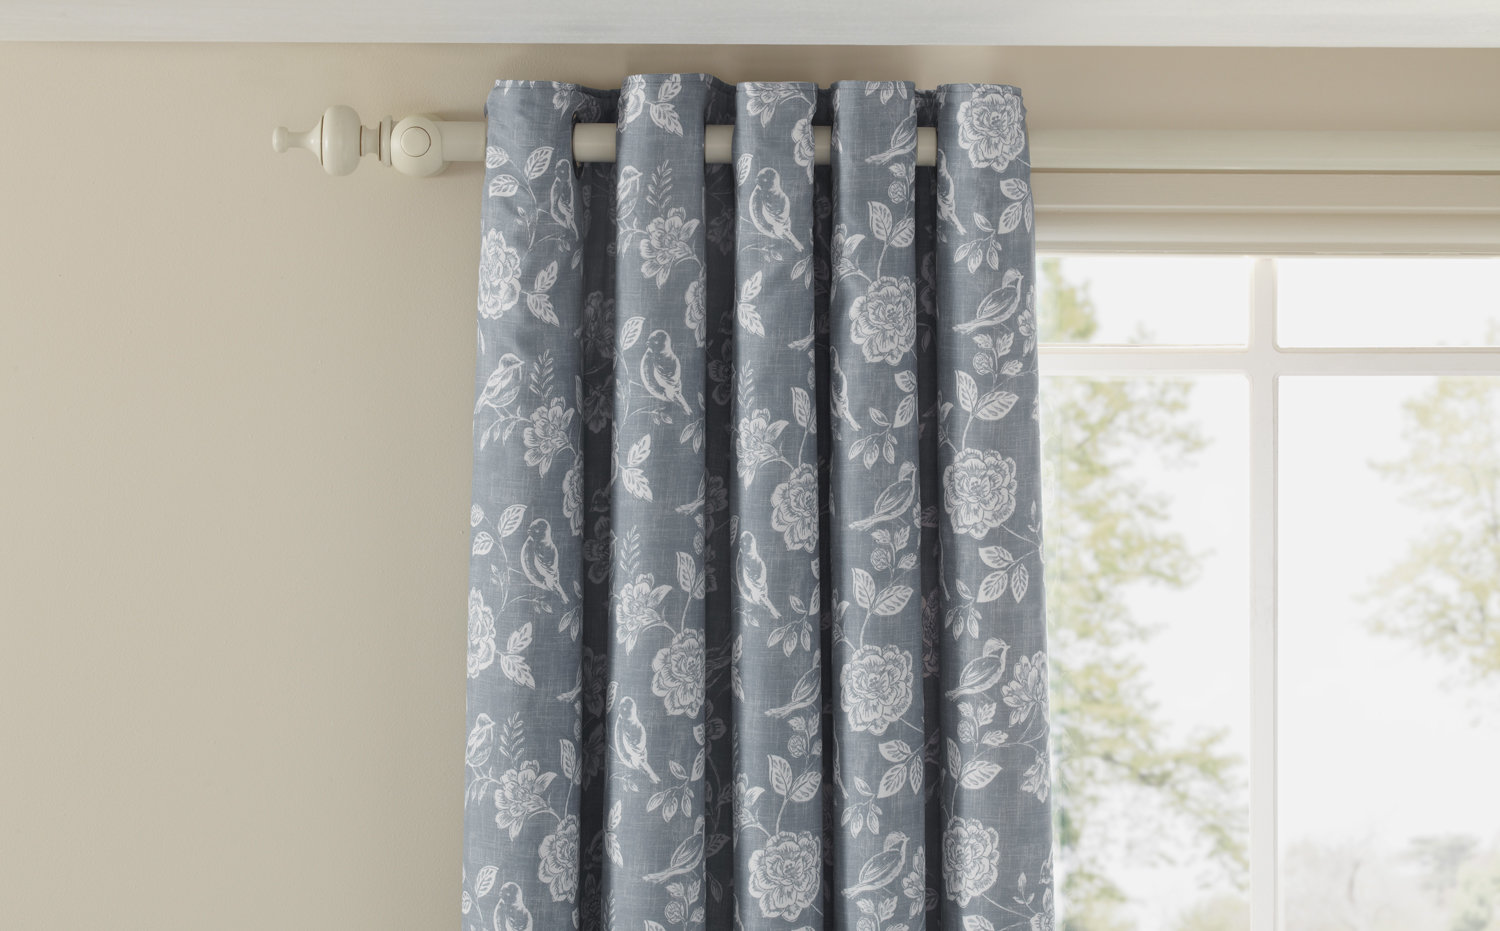 iliv Henley Bird Garden Eyelet Lined Curtains Denim Ready Made Curtains - Product code: 682350